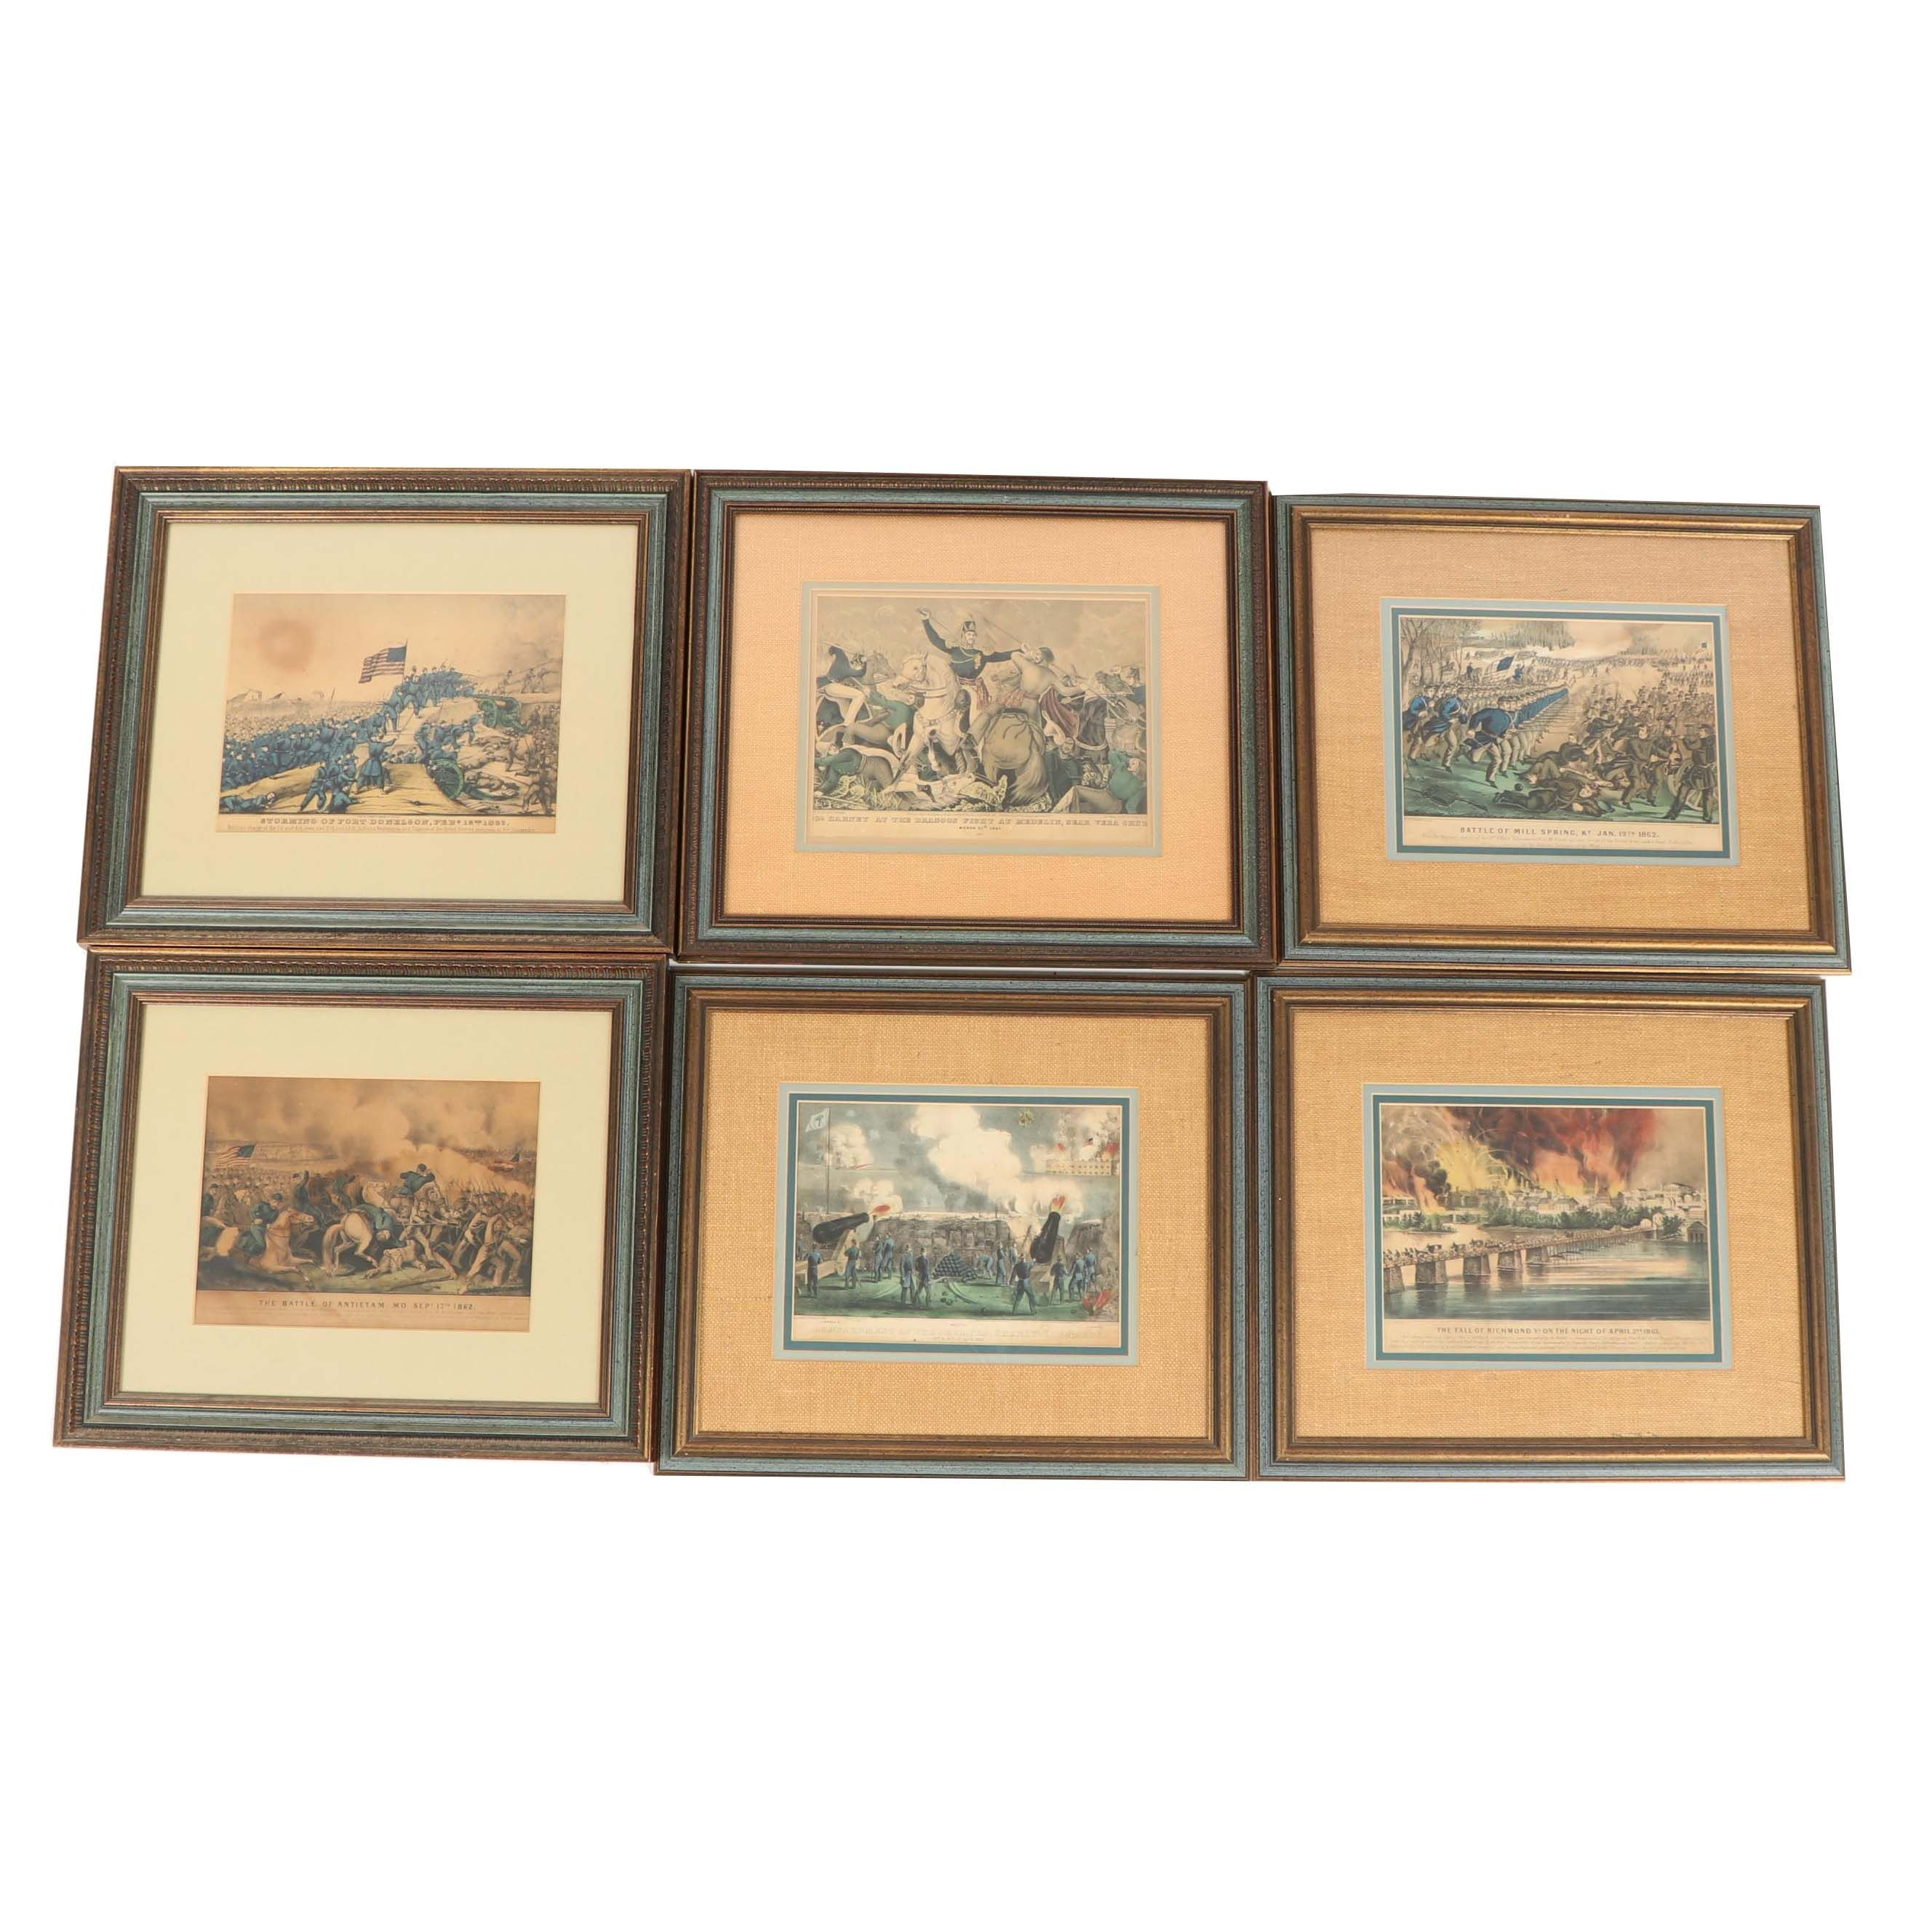 Currier & Ives Colored Lithographs of Civil War Battles